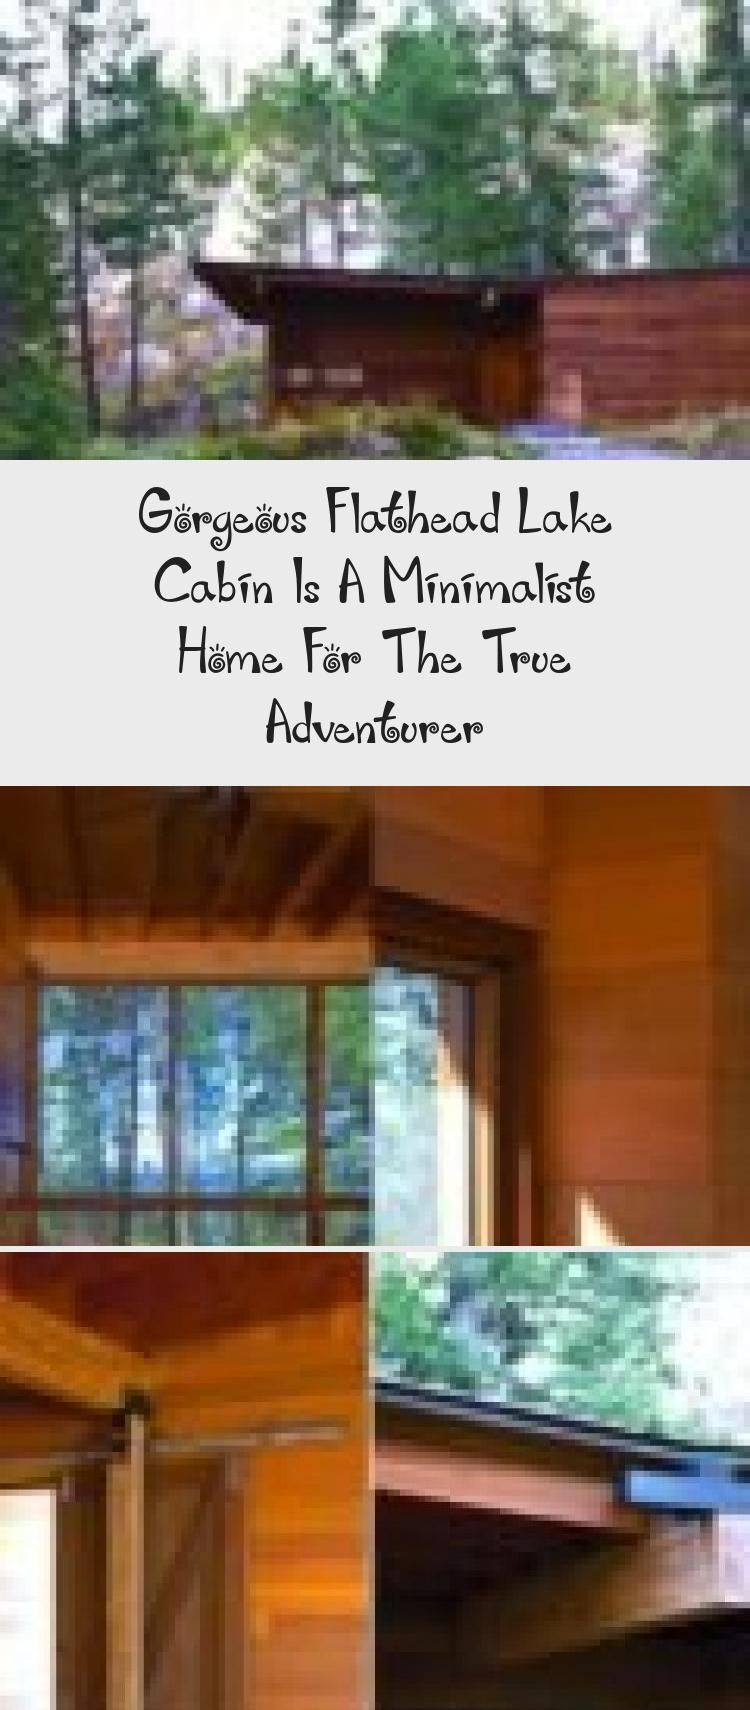 Gorgeous Flathead Lake Cabin Is A Minimalist Home For The True